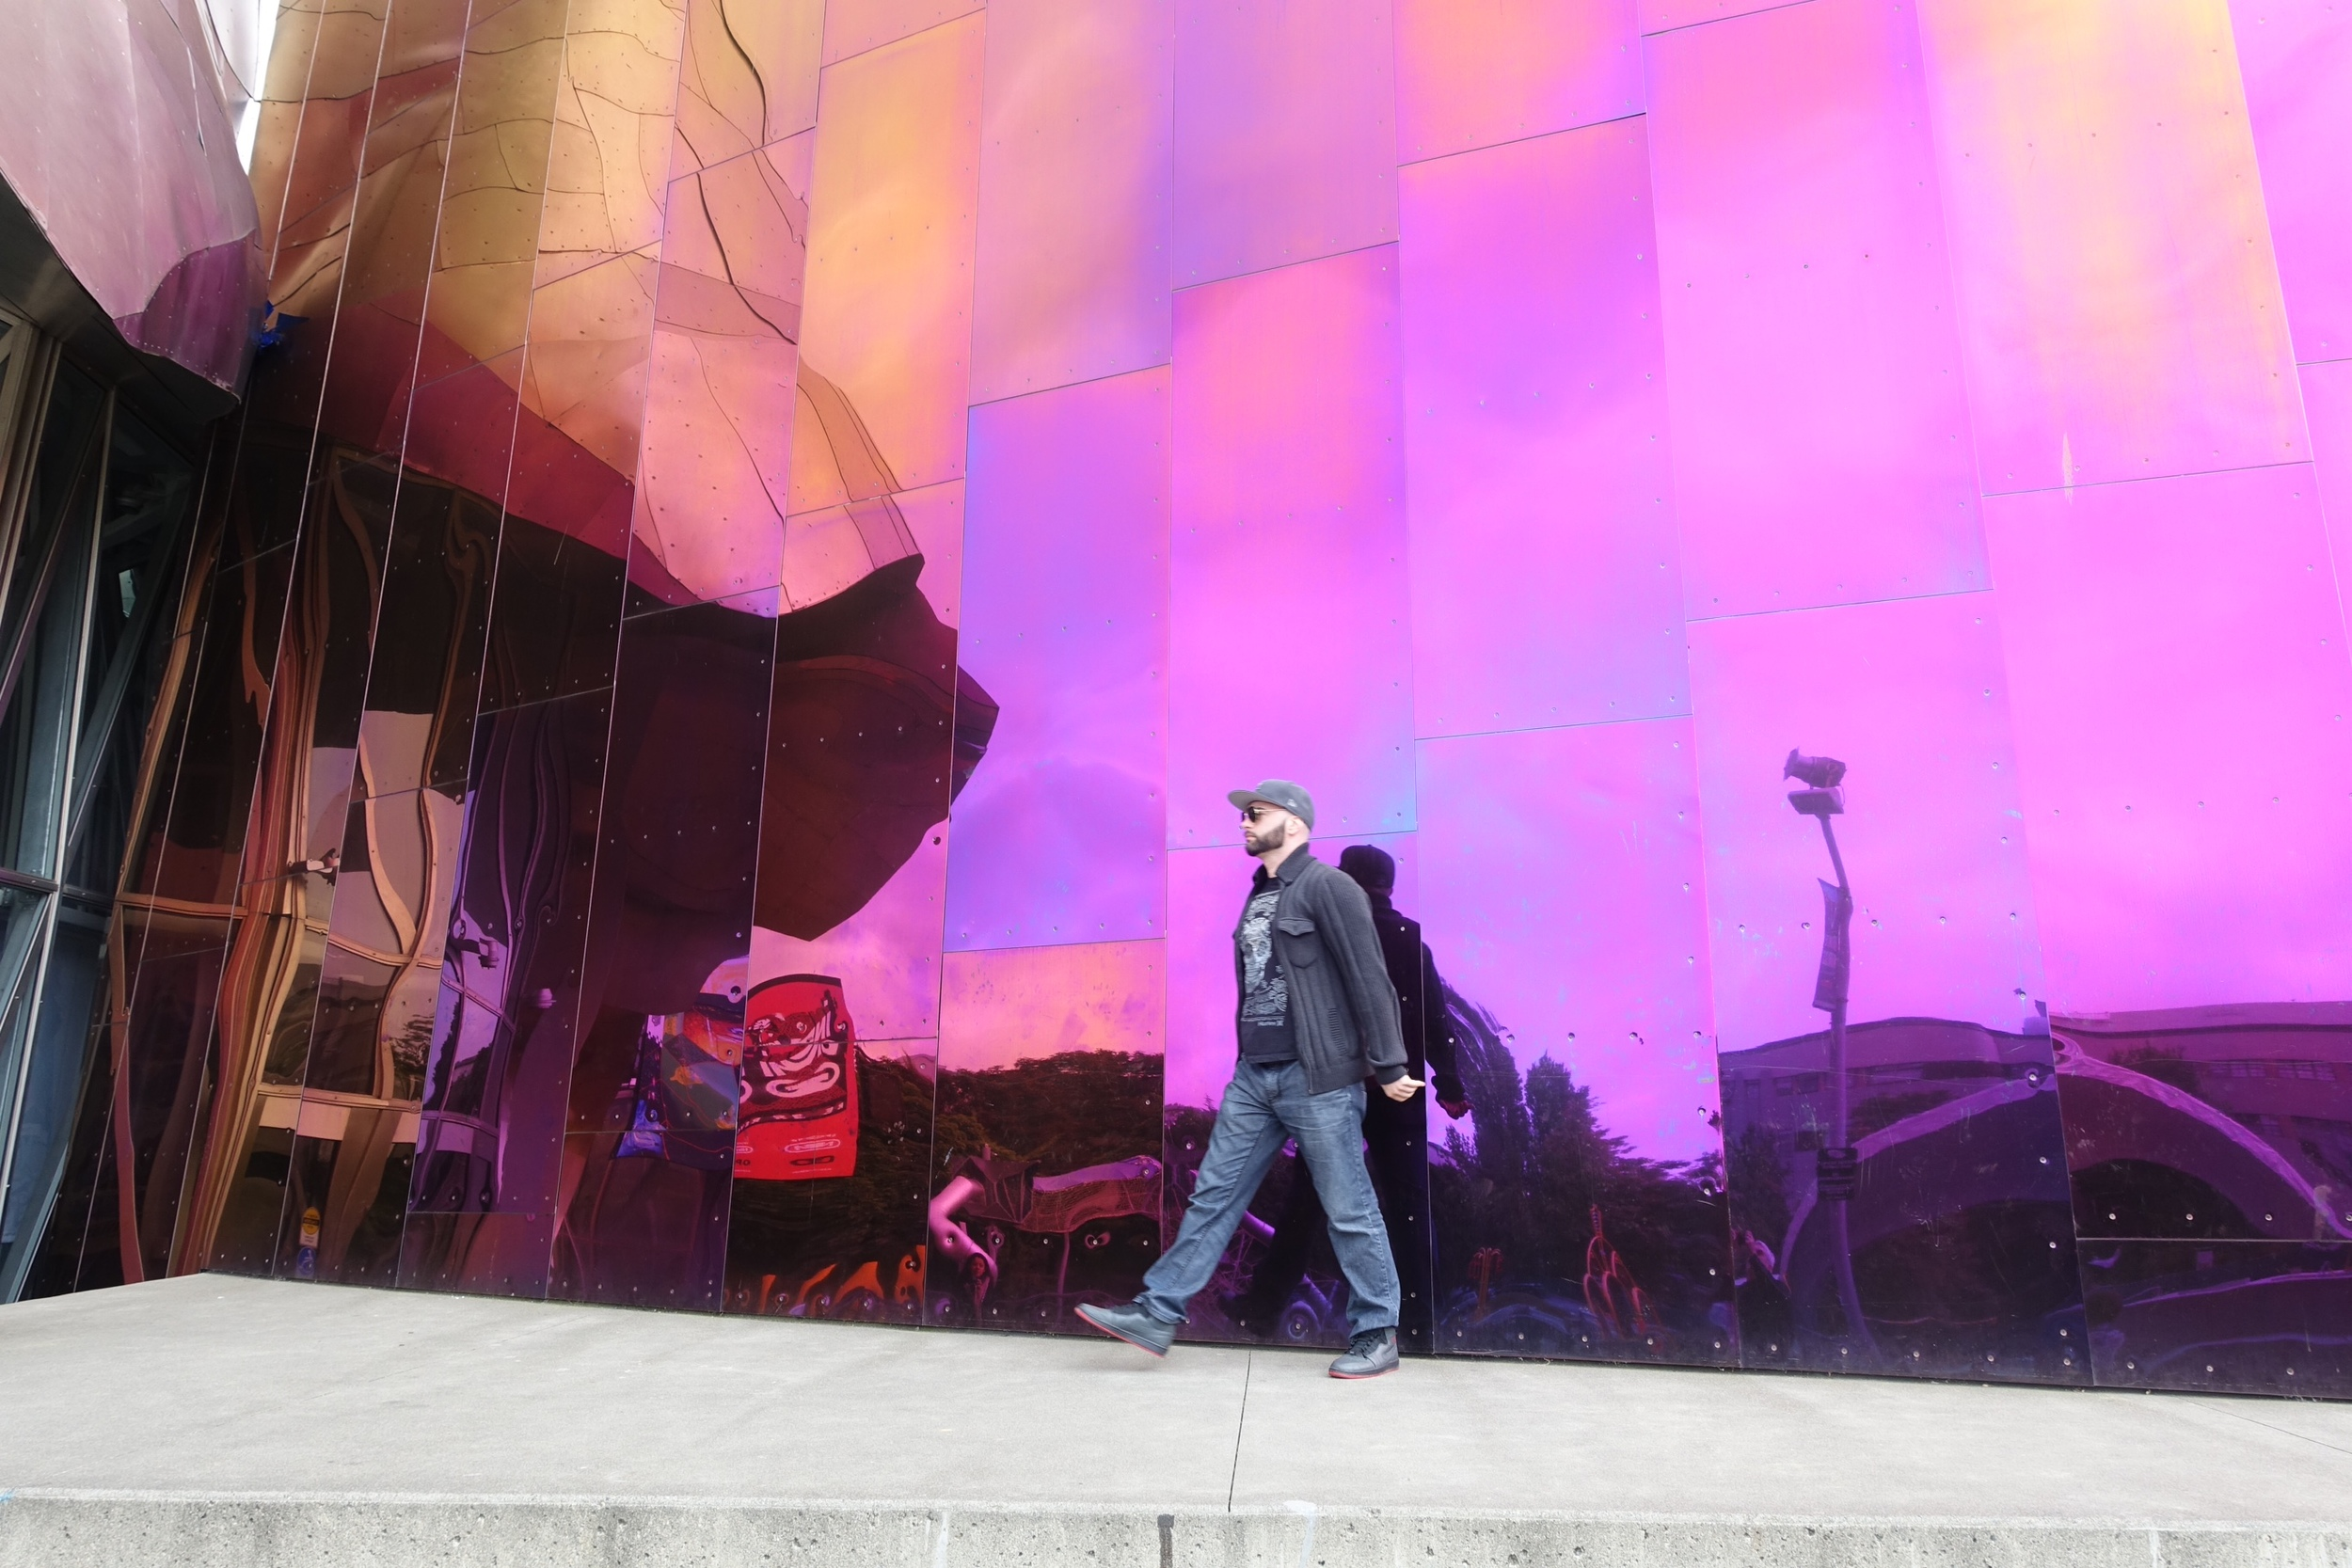 Walking next to the EMP museum designed by architect Frank Gehry is a surreal experience.